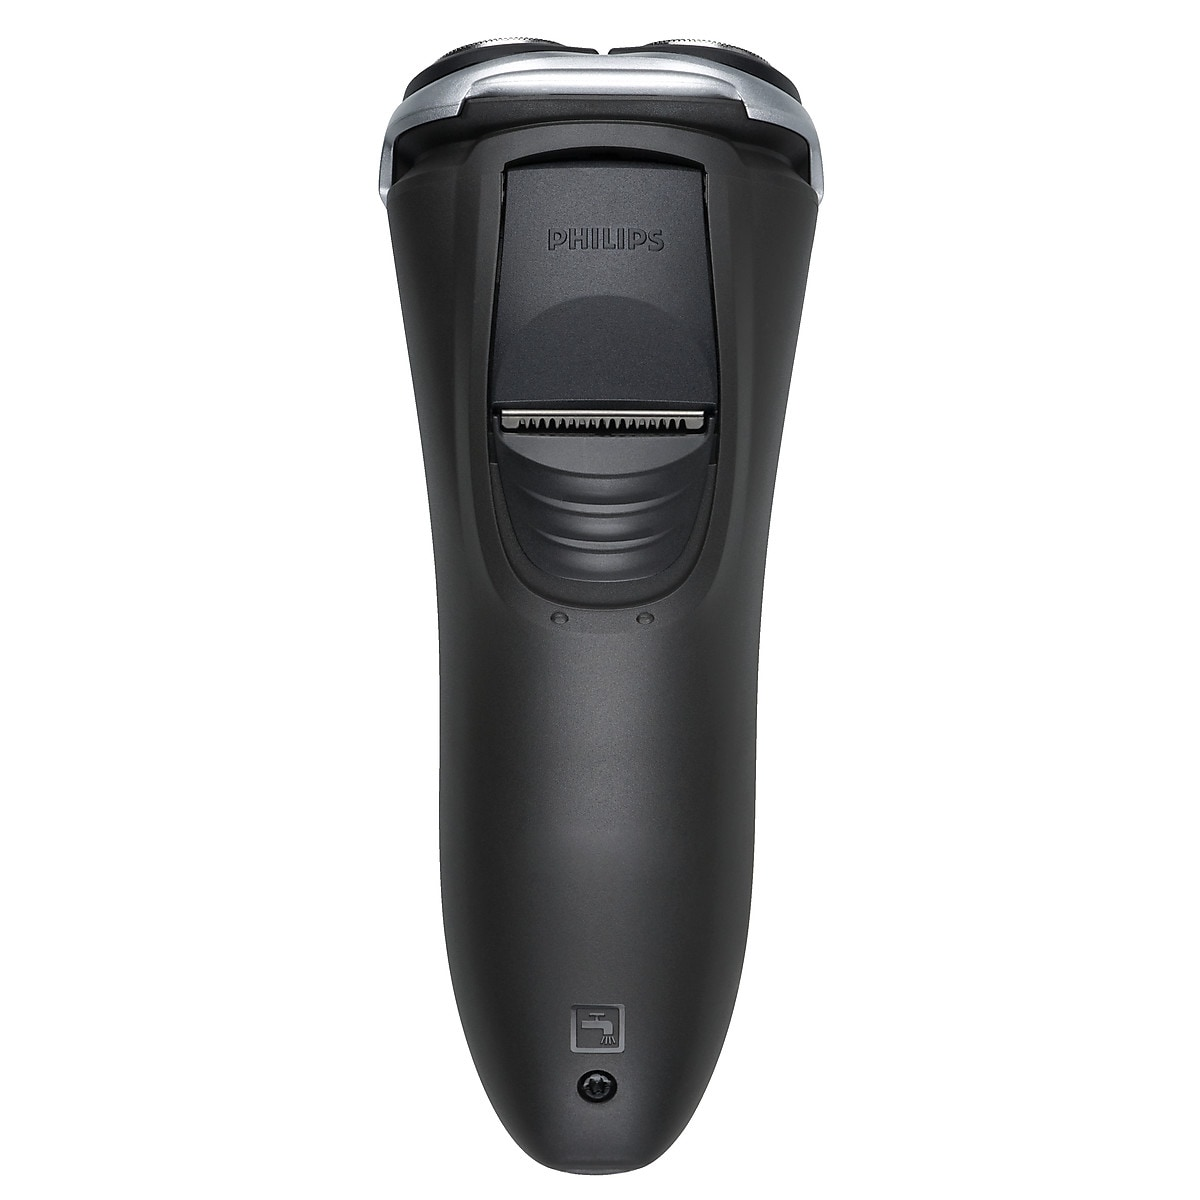 Philips PT860 Shaver